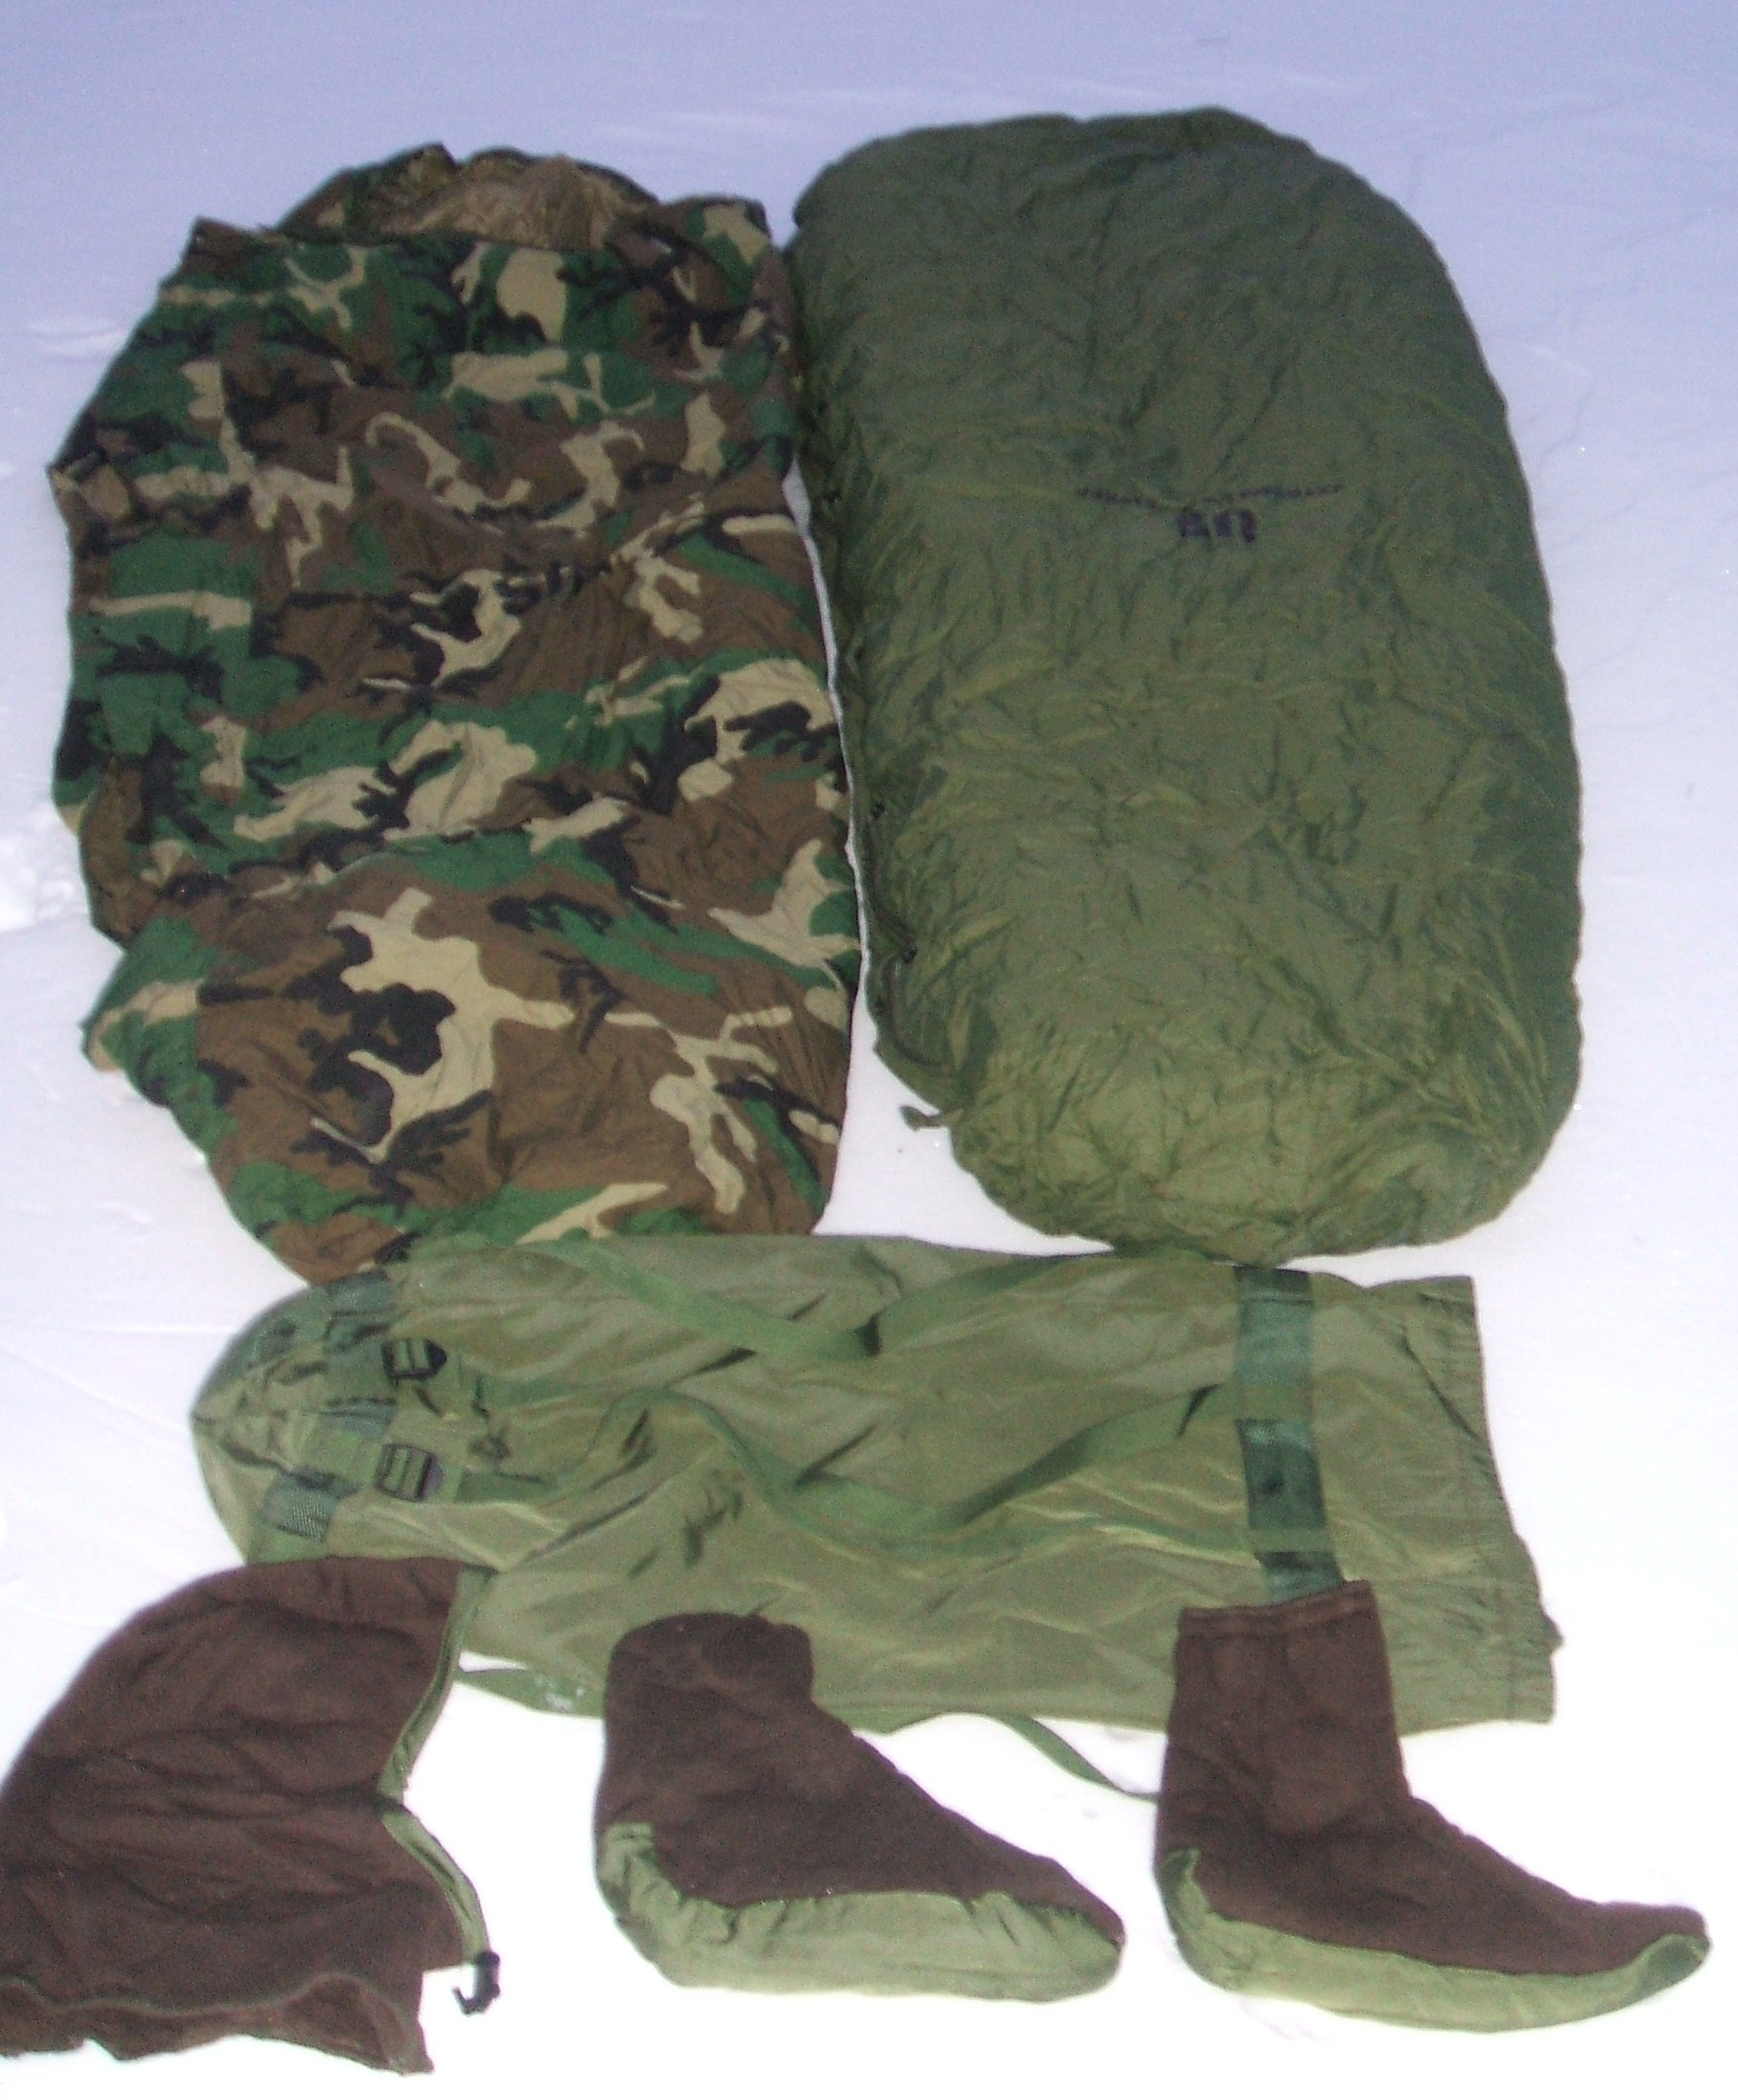 For Sale US Military 5 piece Extreme Cold Weather Sleep System-sleeping-system-064.jpg